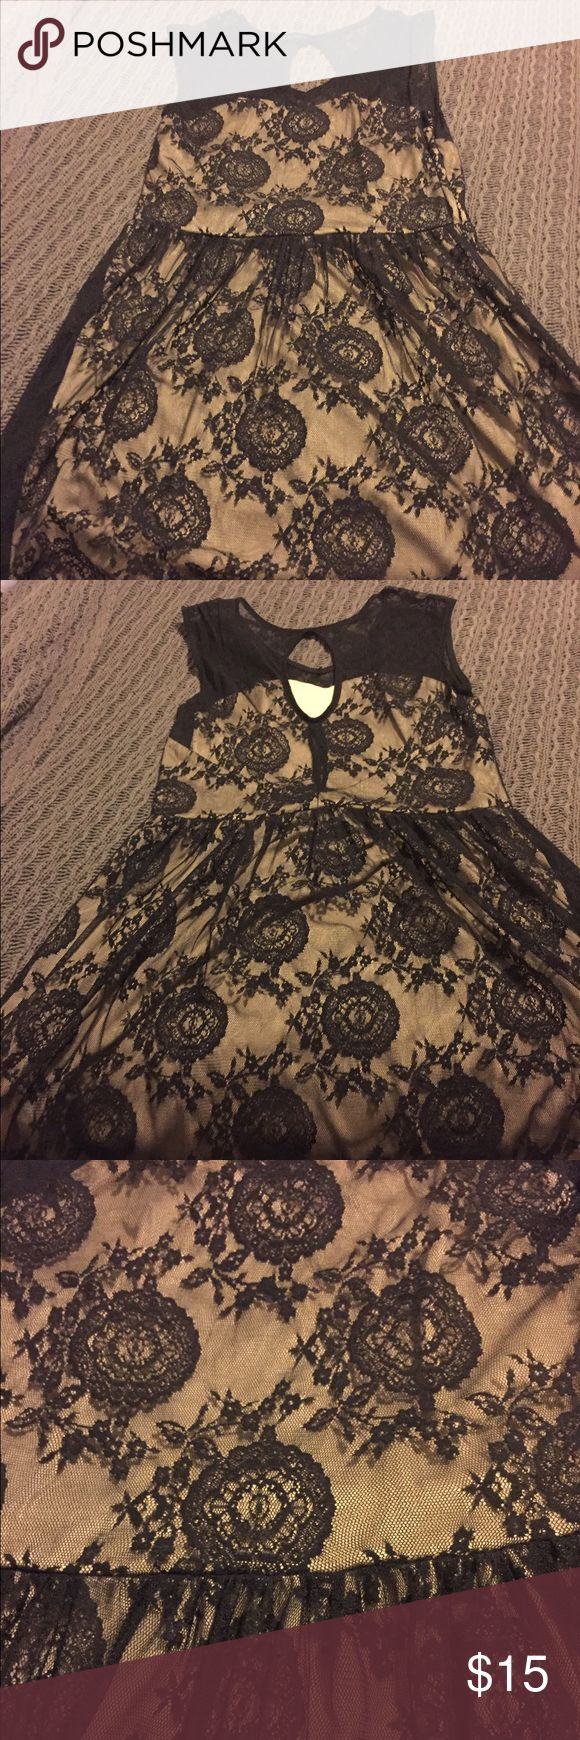 Black and Tan lace dress from ModCloth Size Large. Black and Tan lace dress. ModCloth Dresses